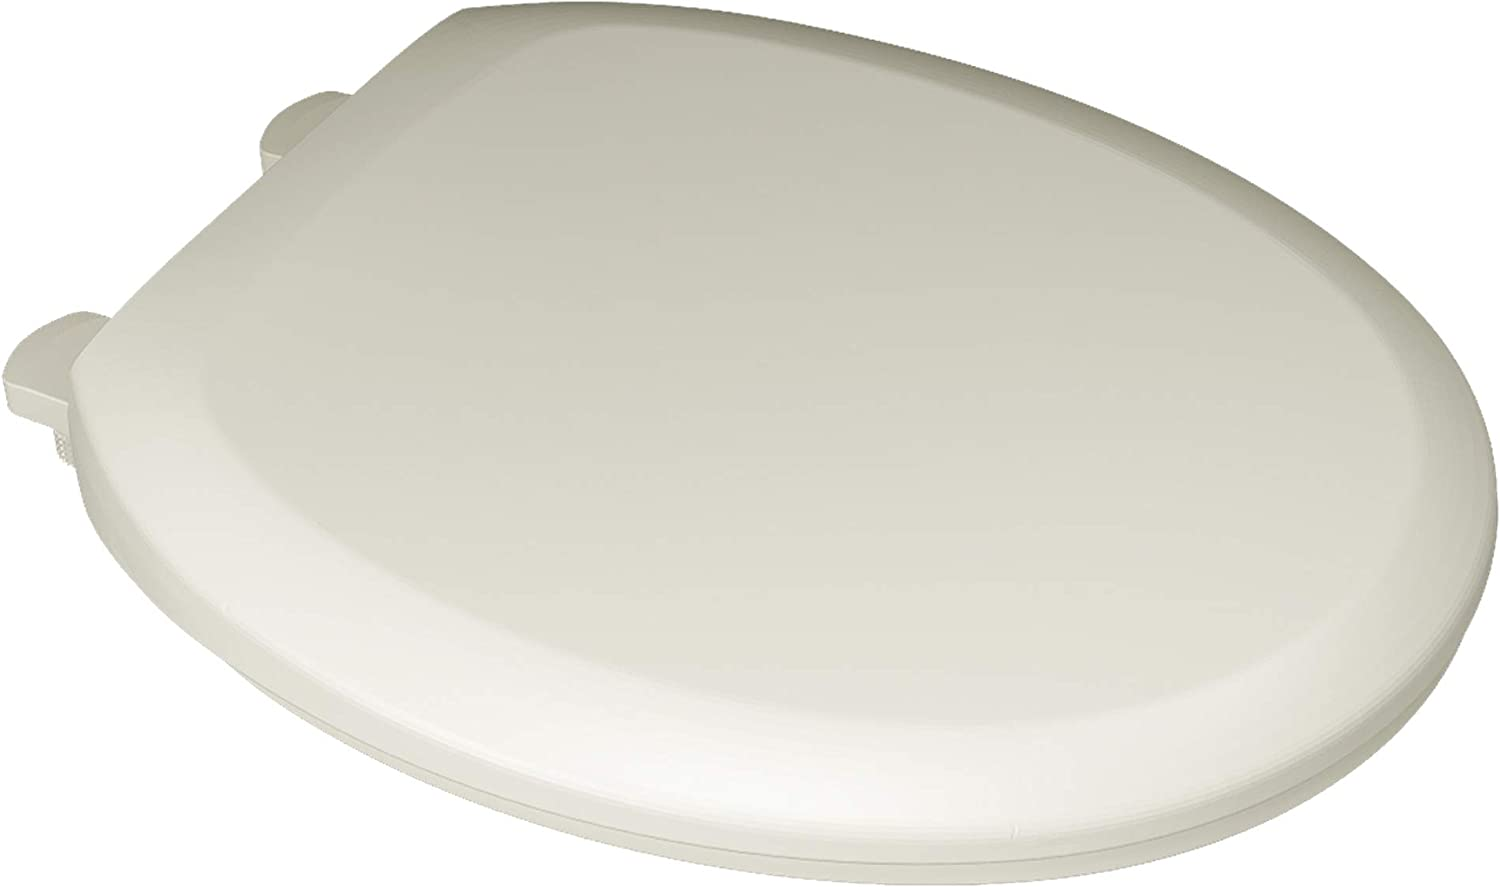 Super beauty product restock quality top American Standard 5320B.65CT.222 Round Slow Toilet Seat New products, world's highest quality popular! Close L